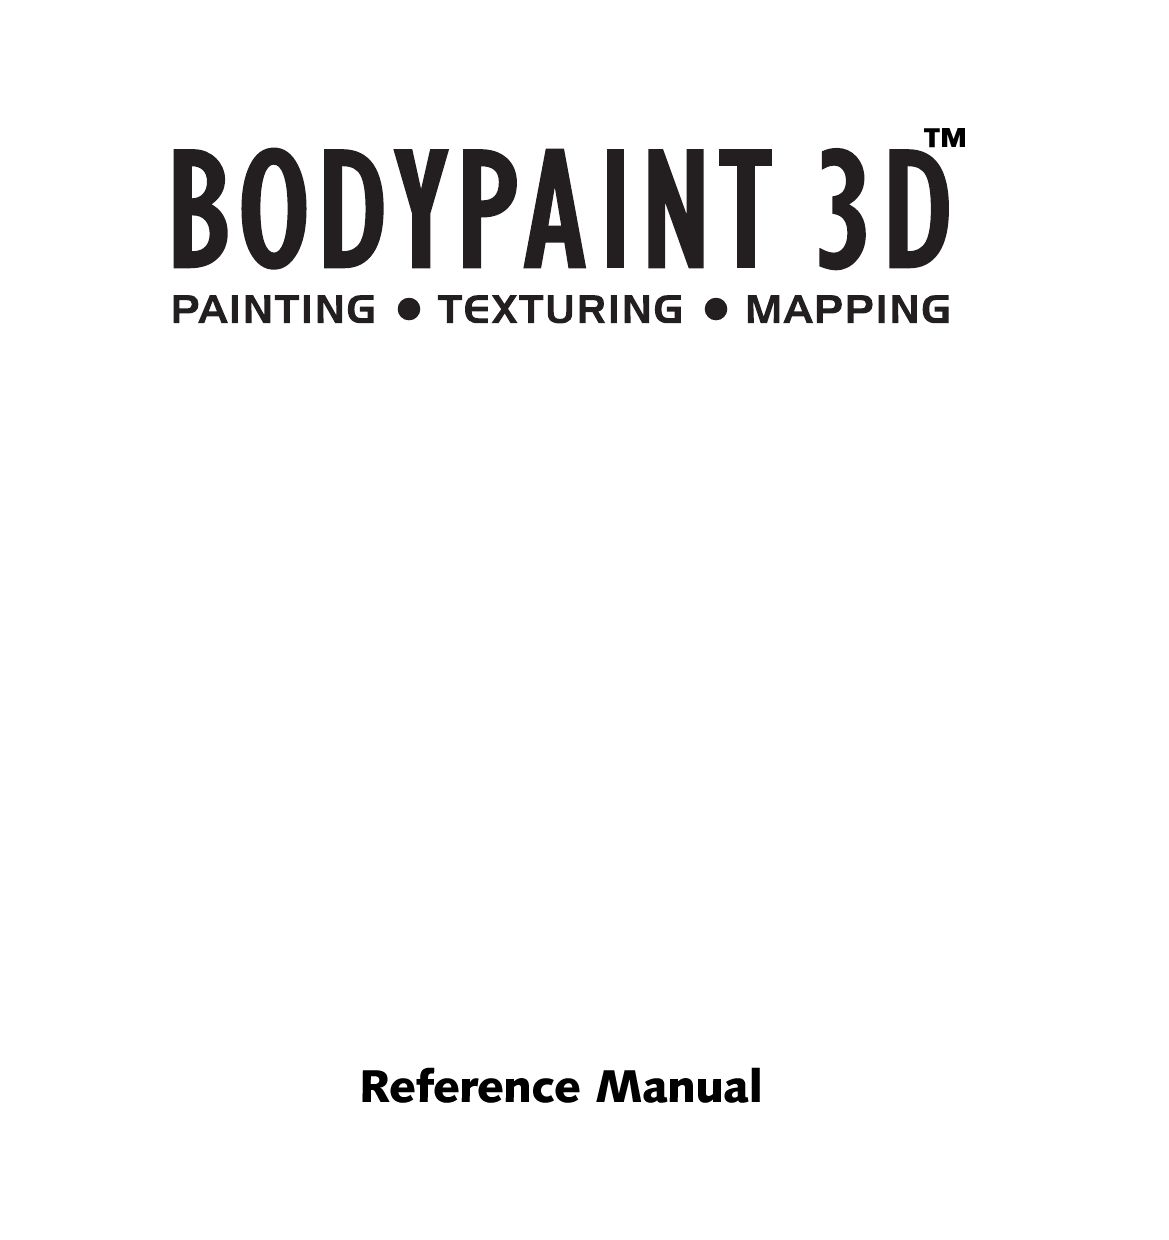 Cinema 4d bodypaint 3d Manual by Bonzo Dog doo dah films